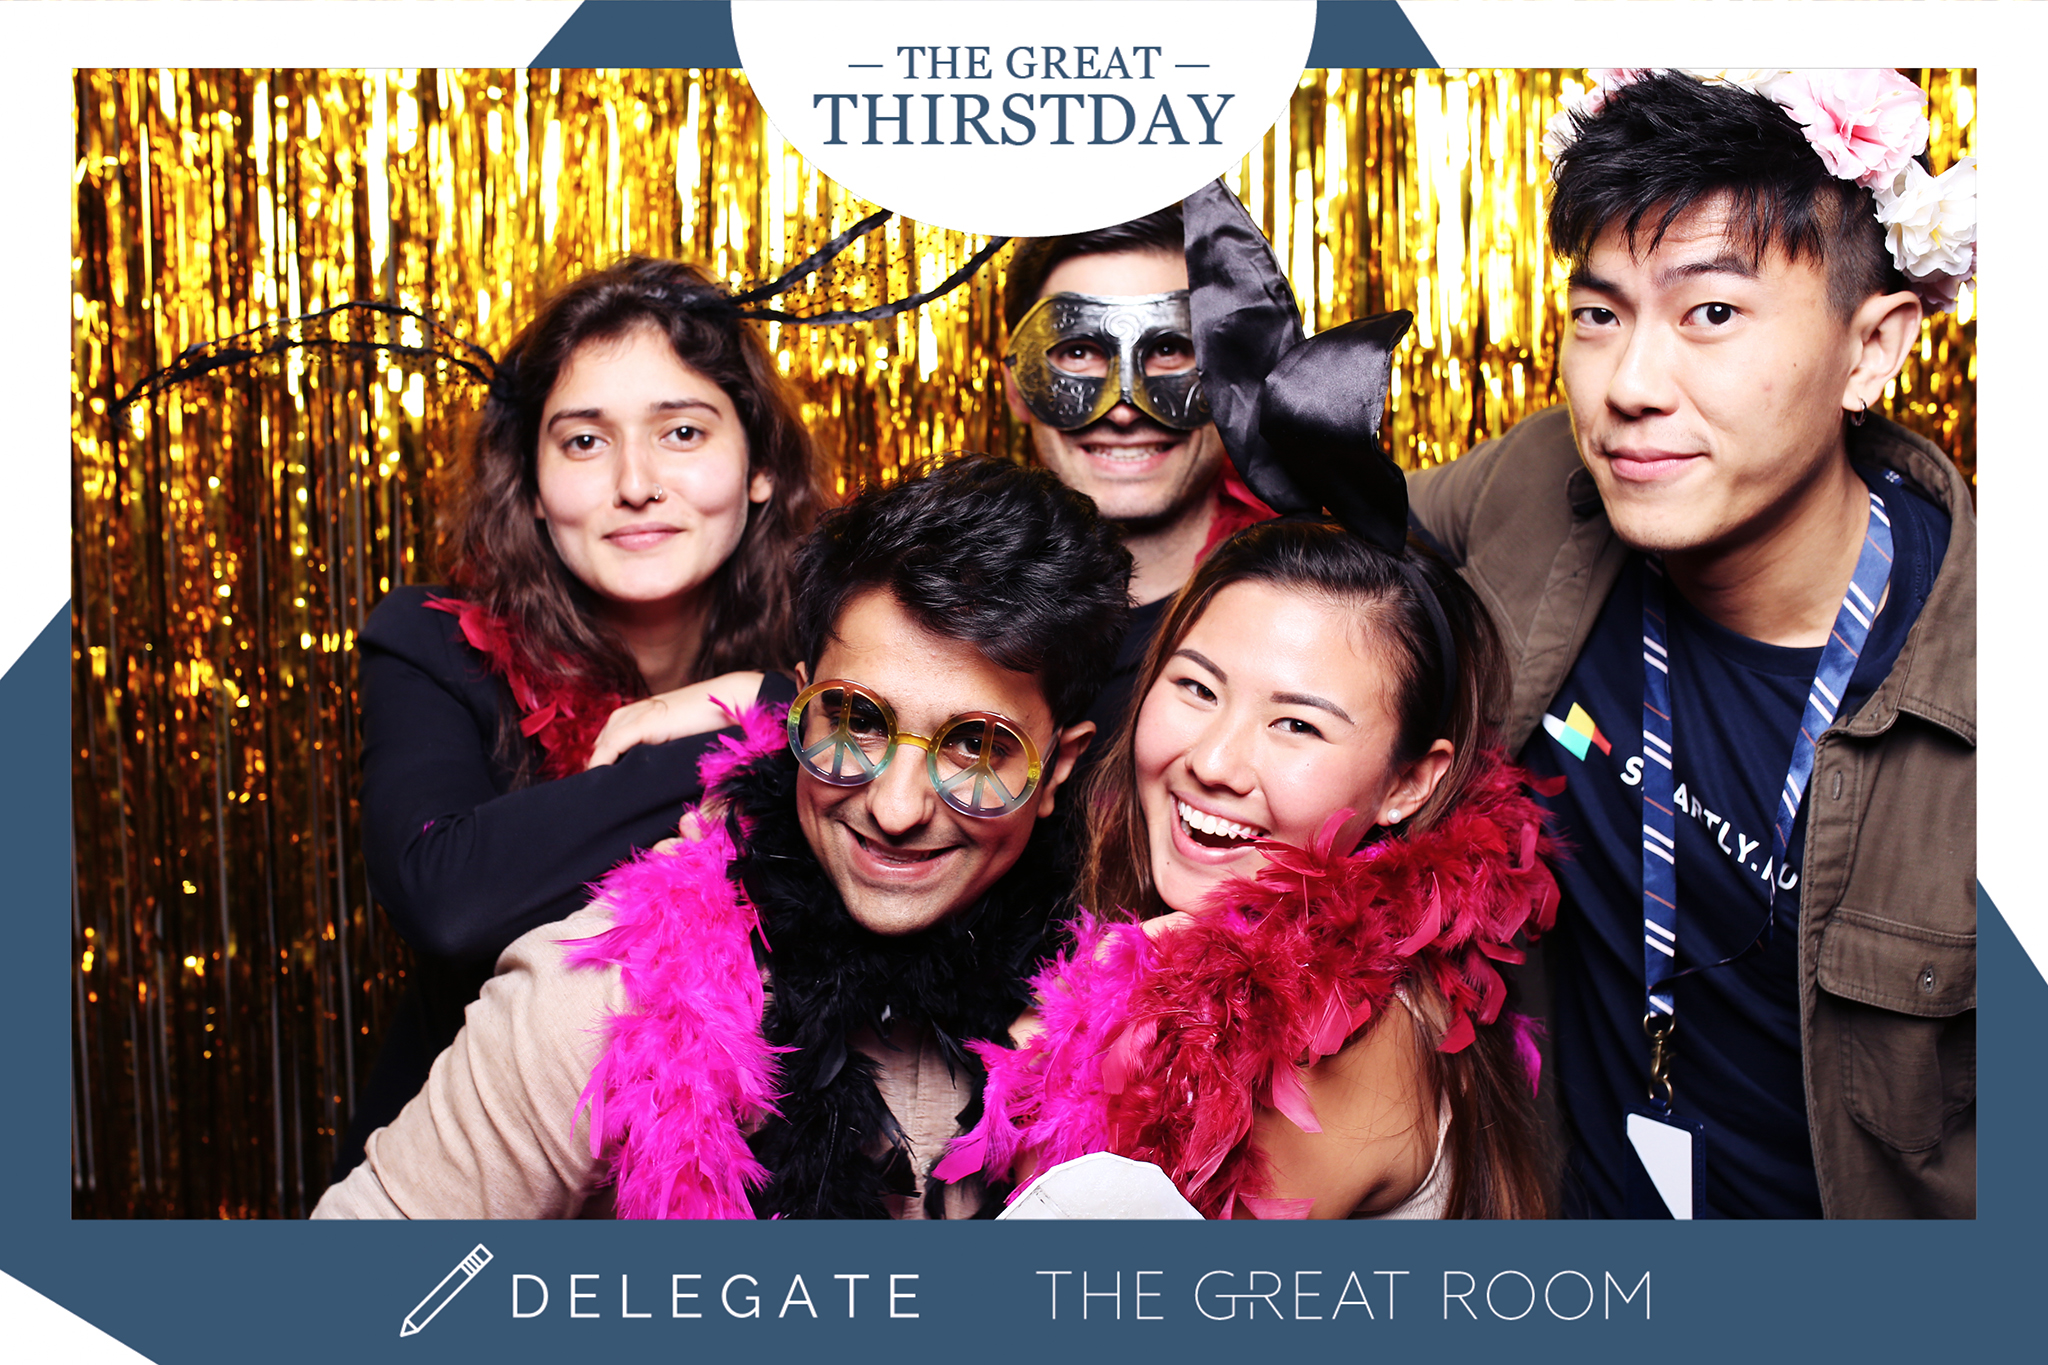 Delegate x The Great Thirstday15